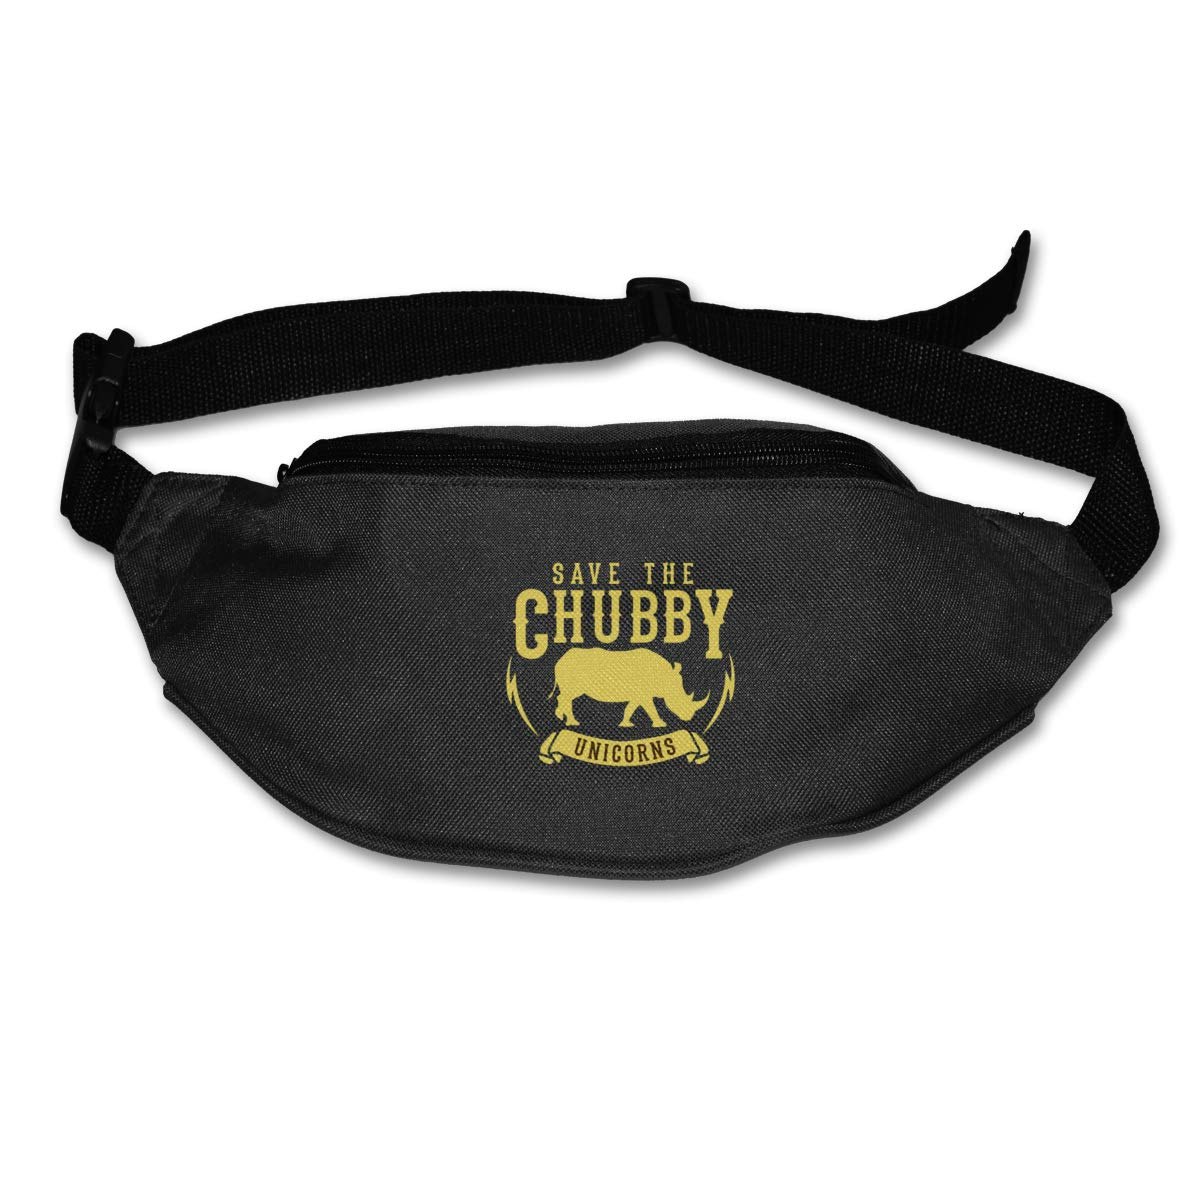 Save The Chubby Unicorns Sport Waist Packs Fanny Pack Adjustable For Travel